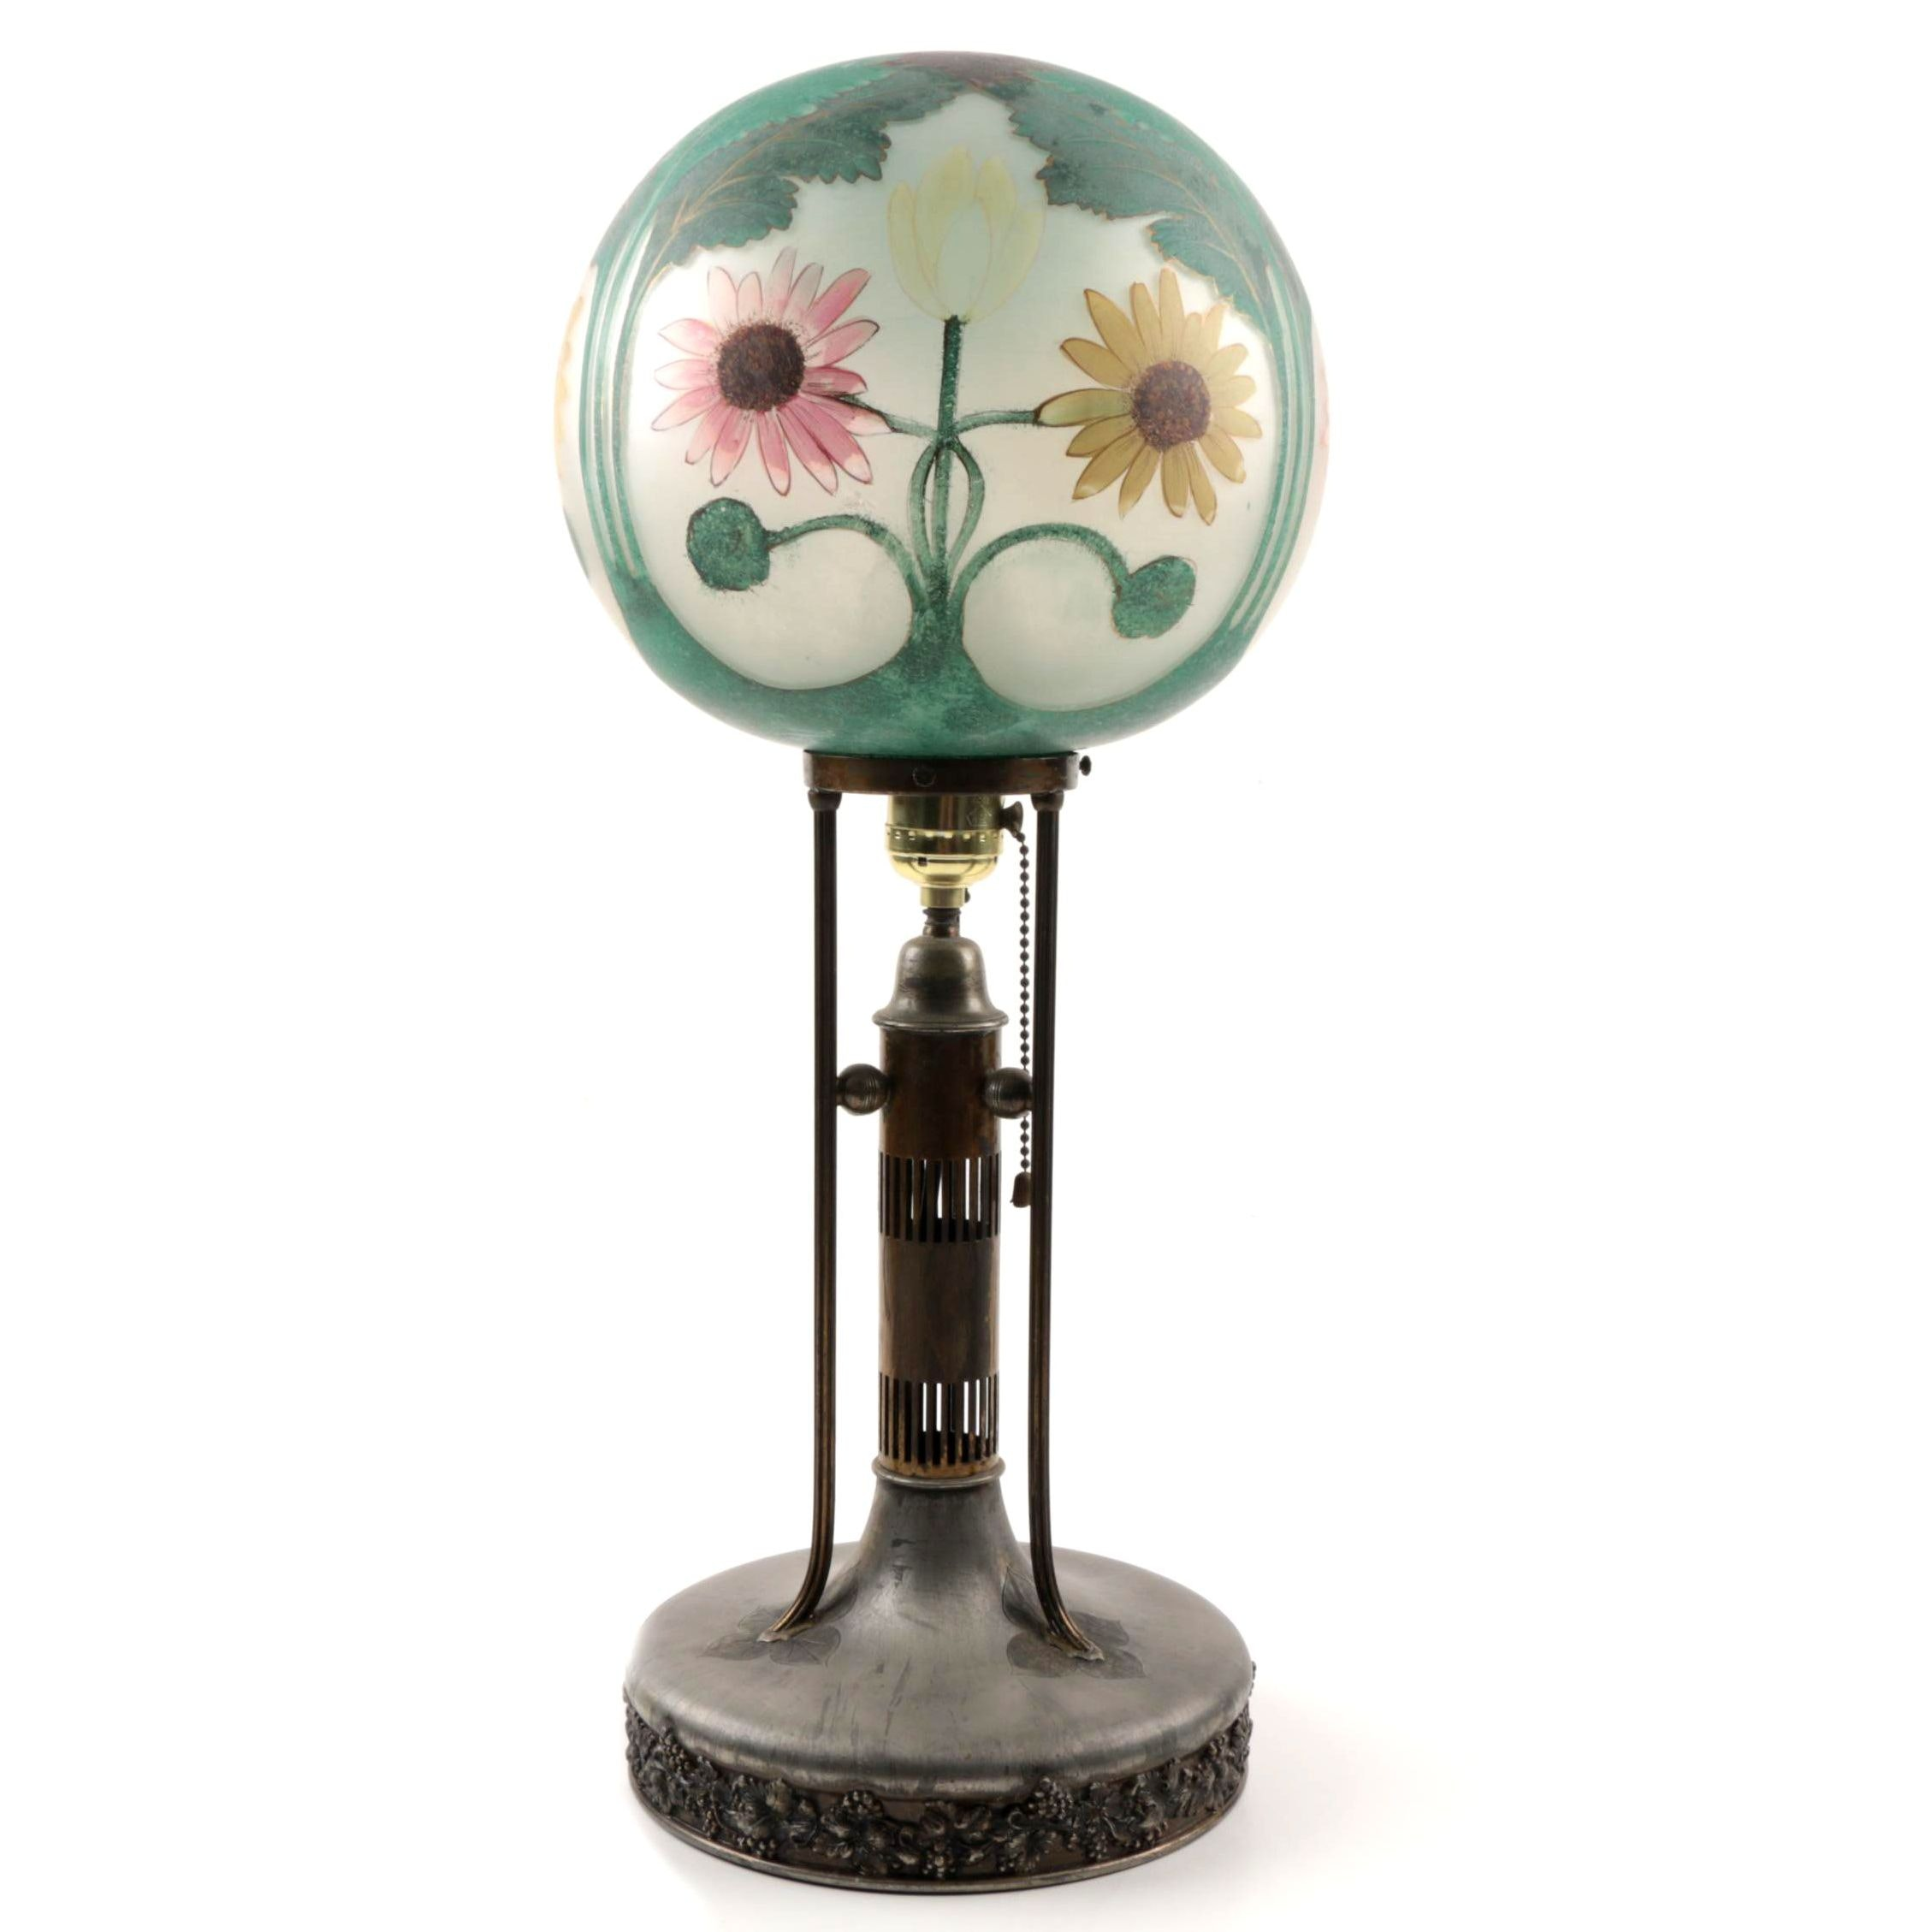 Pairpoint Table Lamp with Reverse-Painted Glass Globe